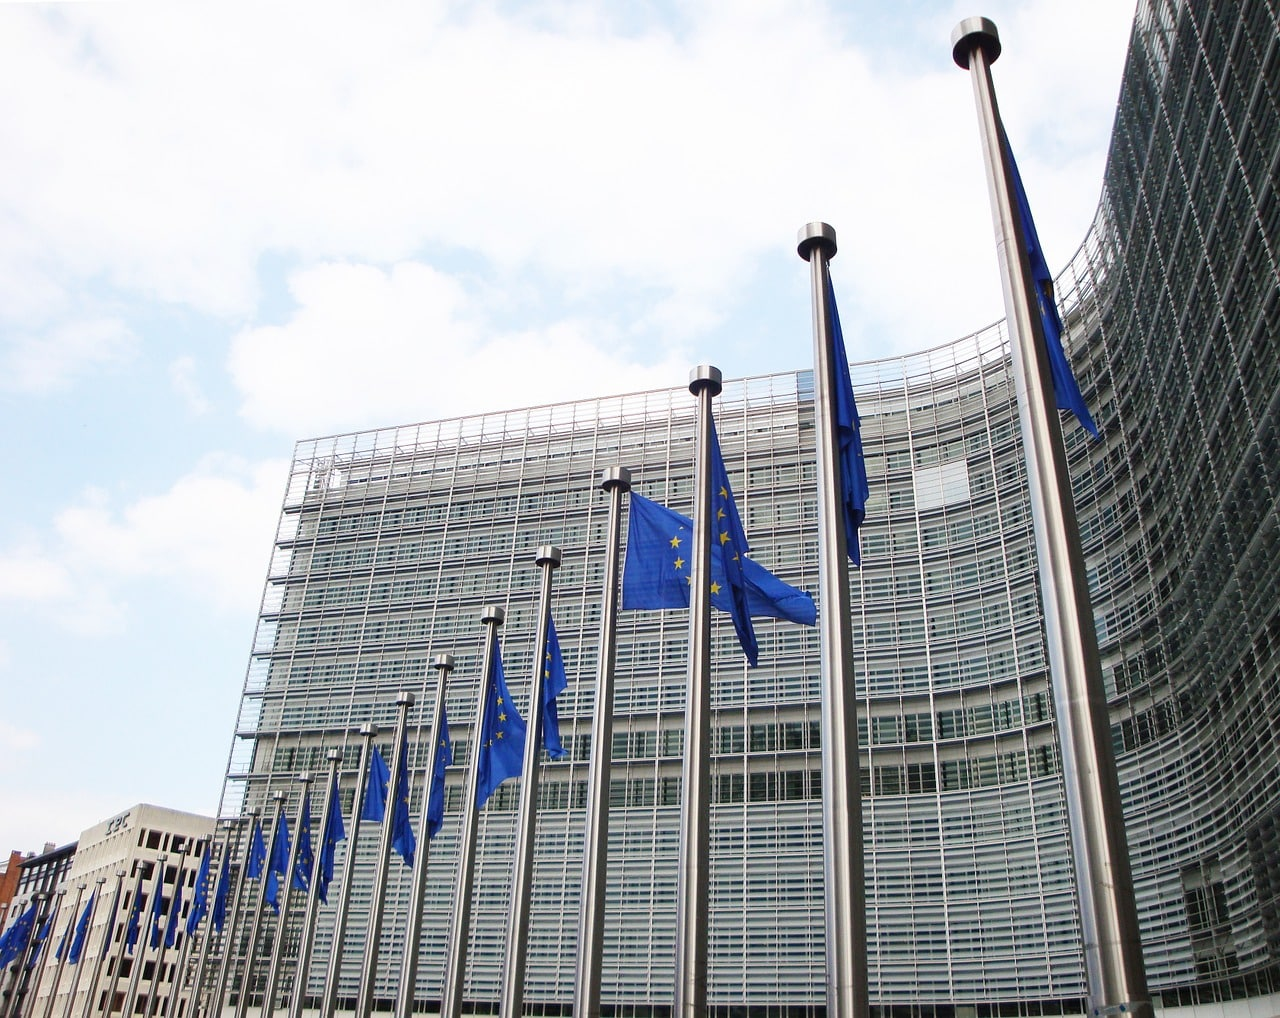 The European Commission in Brussels. Image by Jai79 on Pixabay